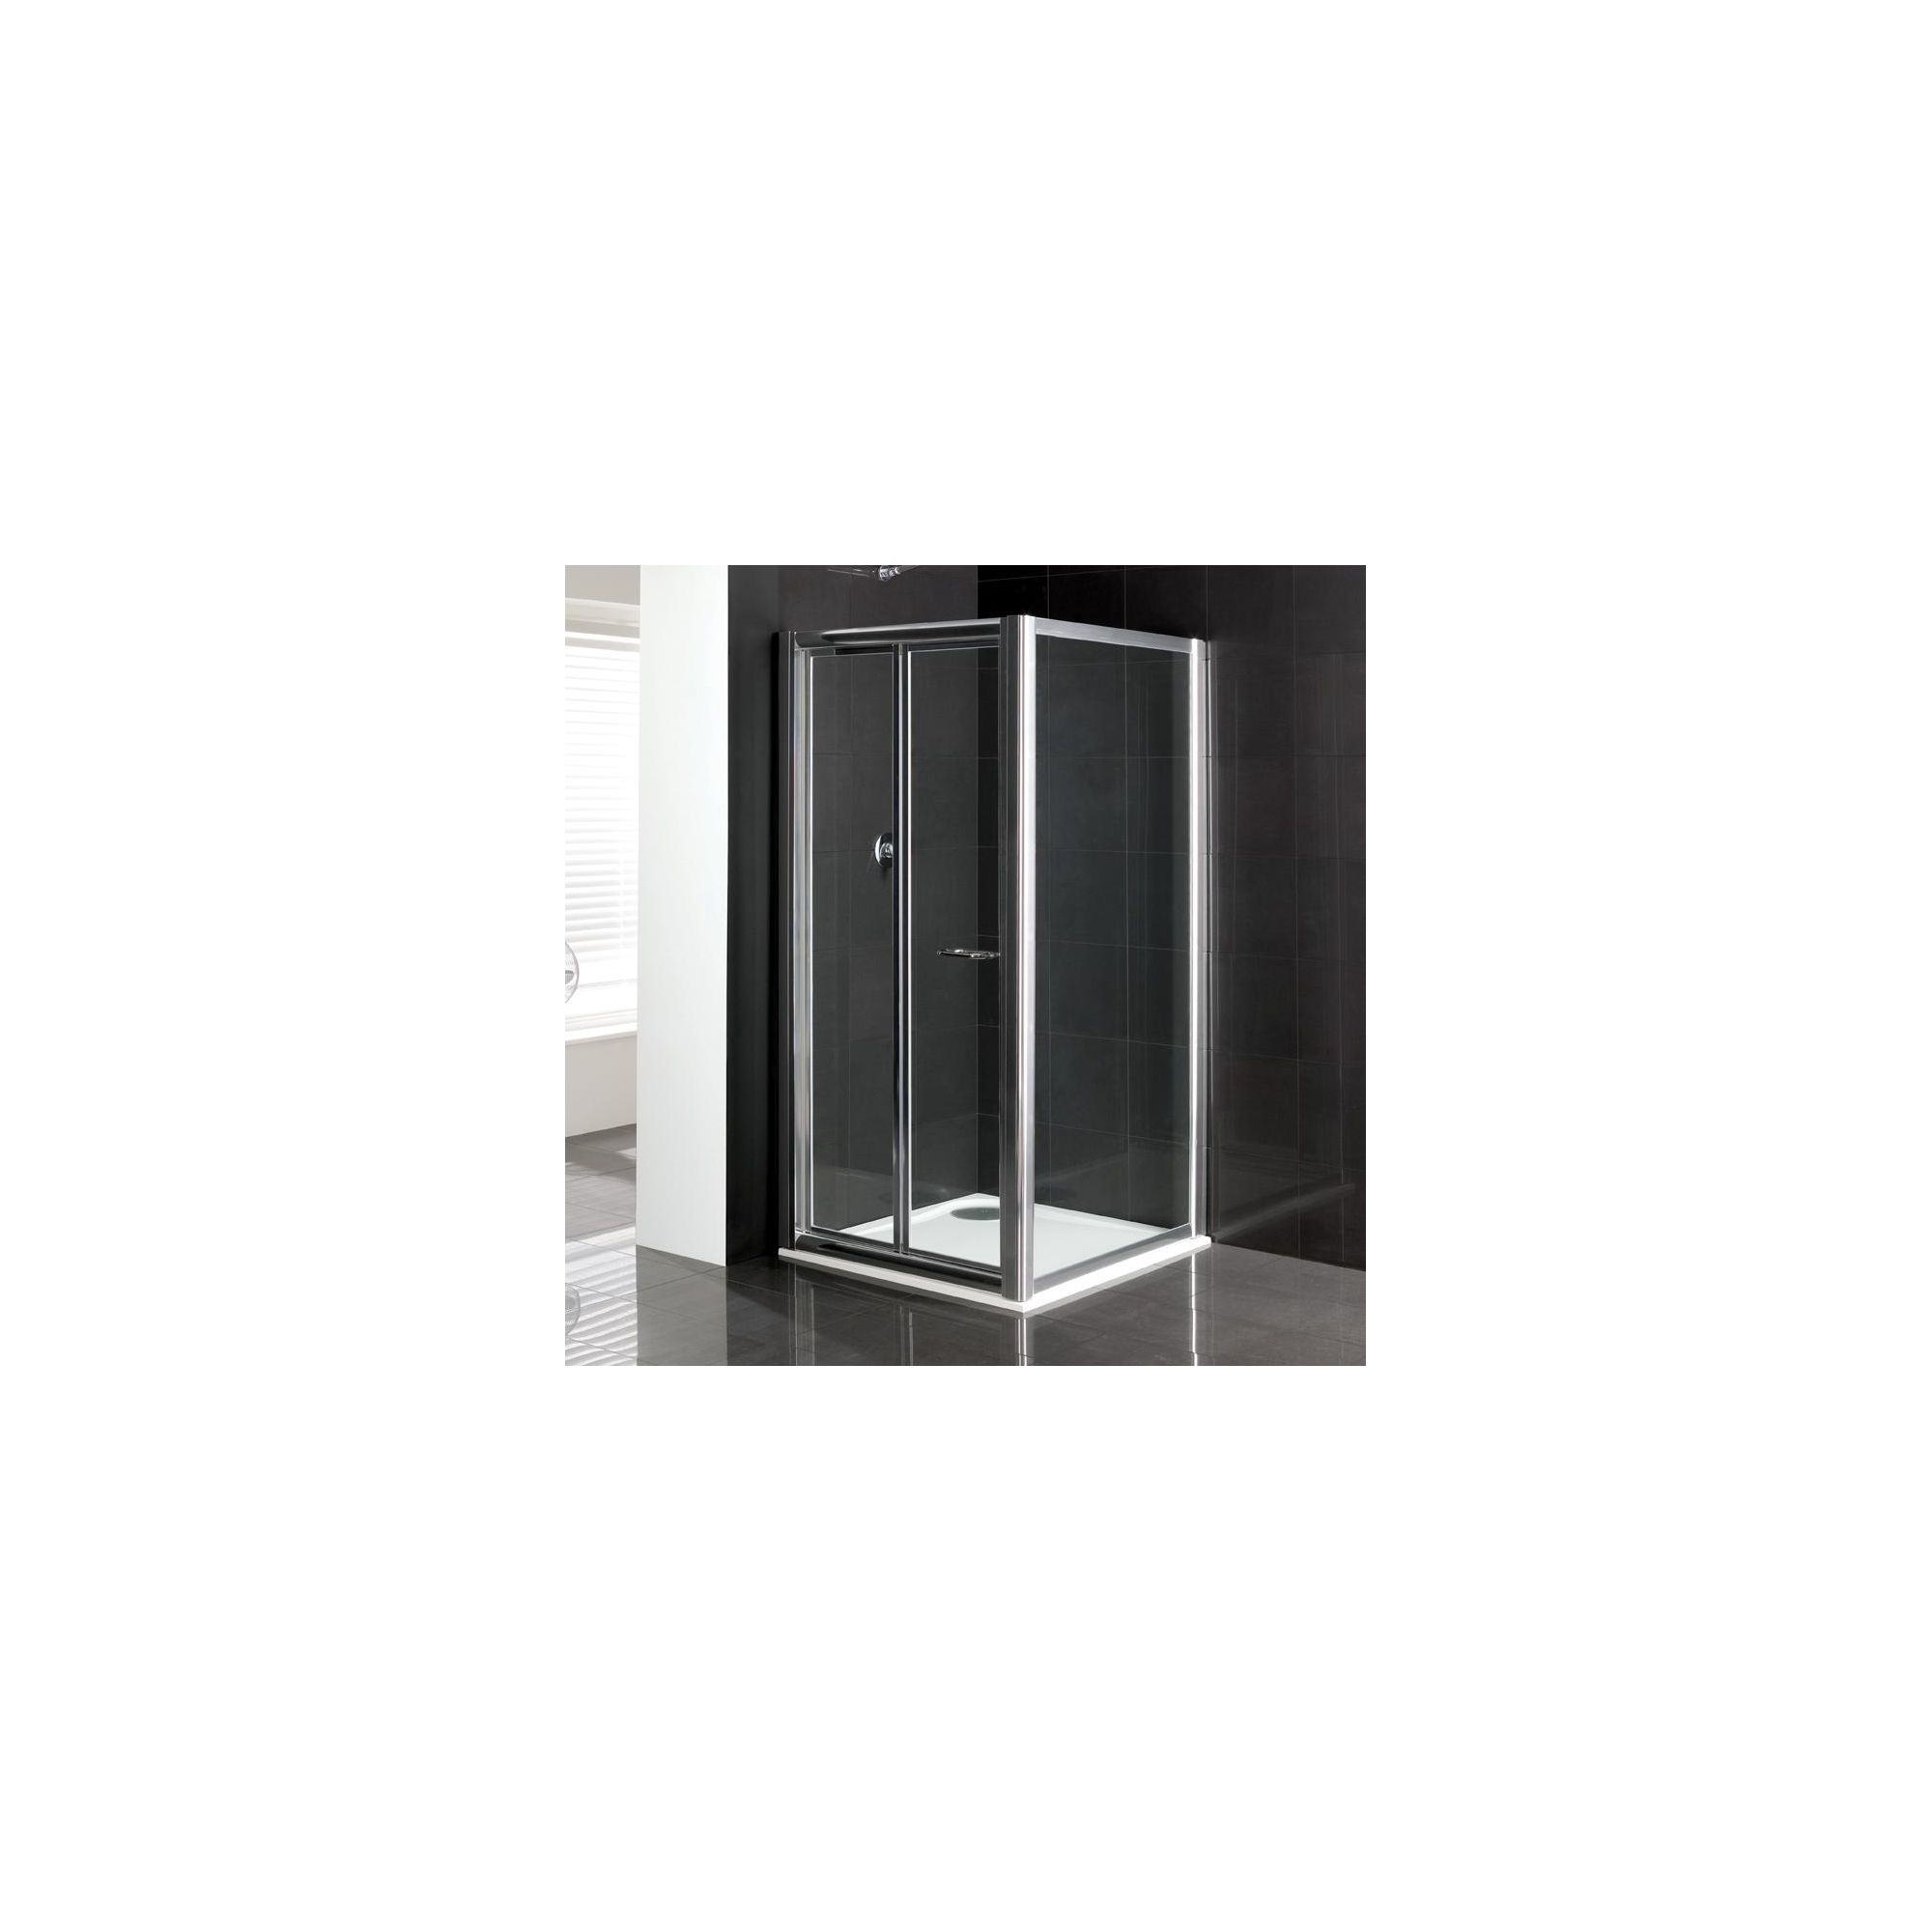 Duchy Elite Silver Bi-Fold Door Shower Enclosure, 700mm x 700mm, Standard Tray, 6mm Glass at Tesco Direct